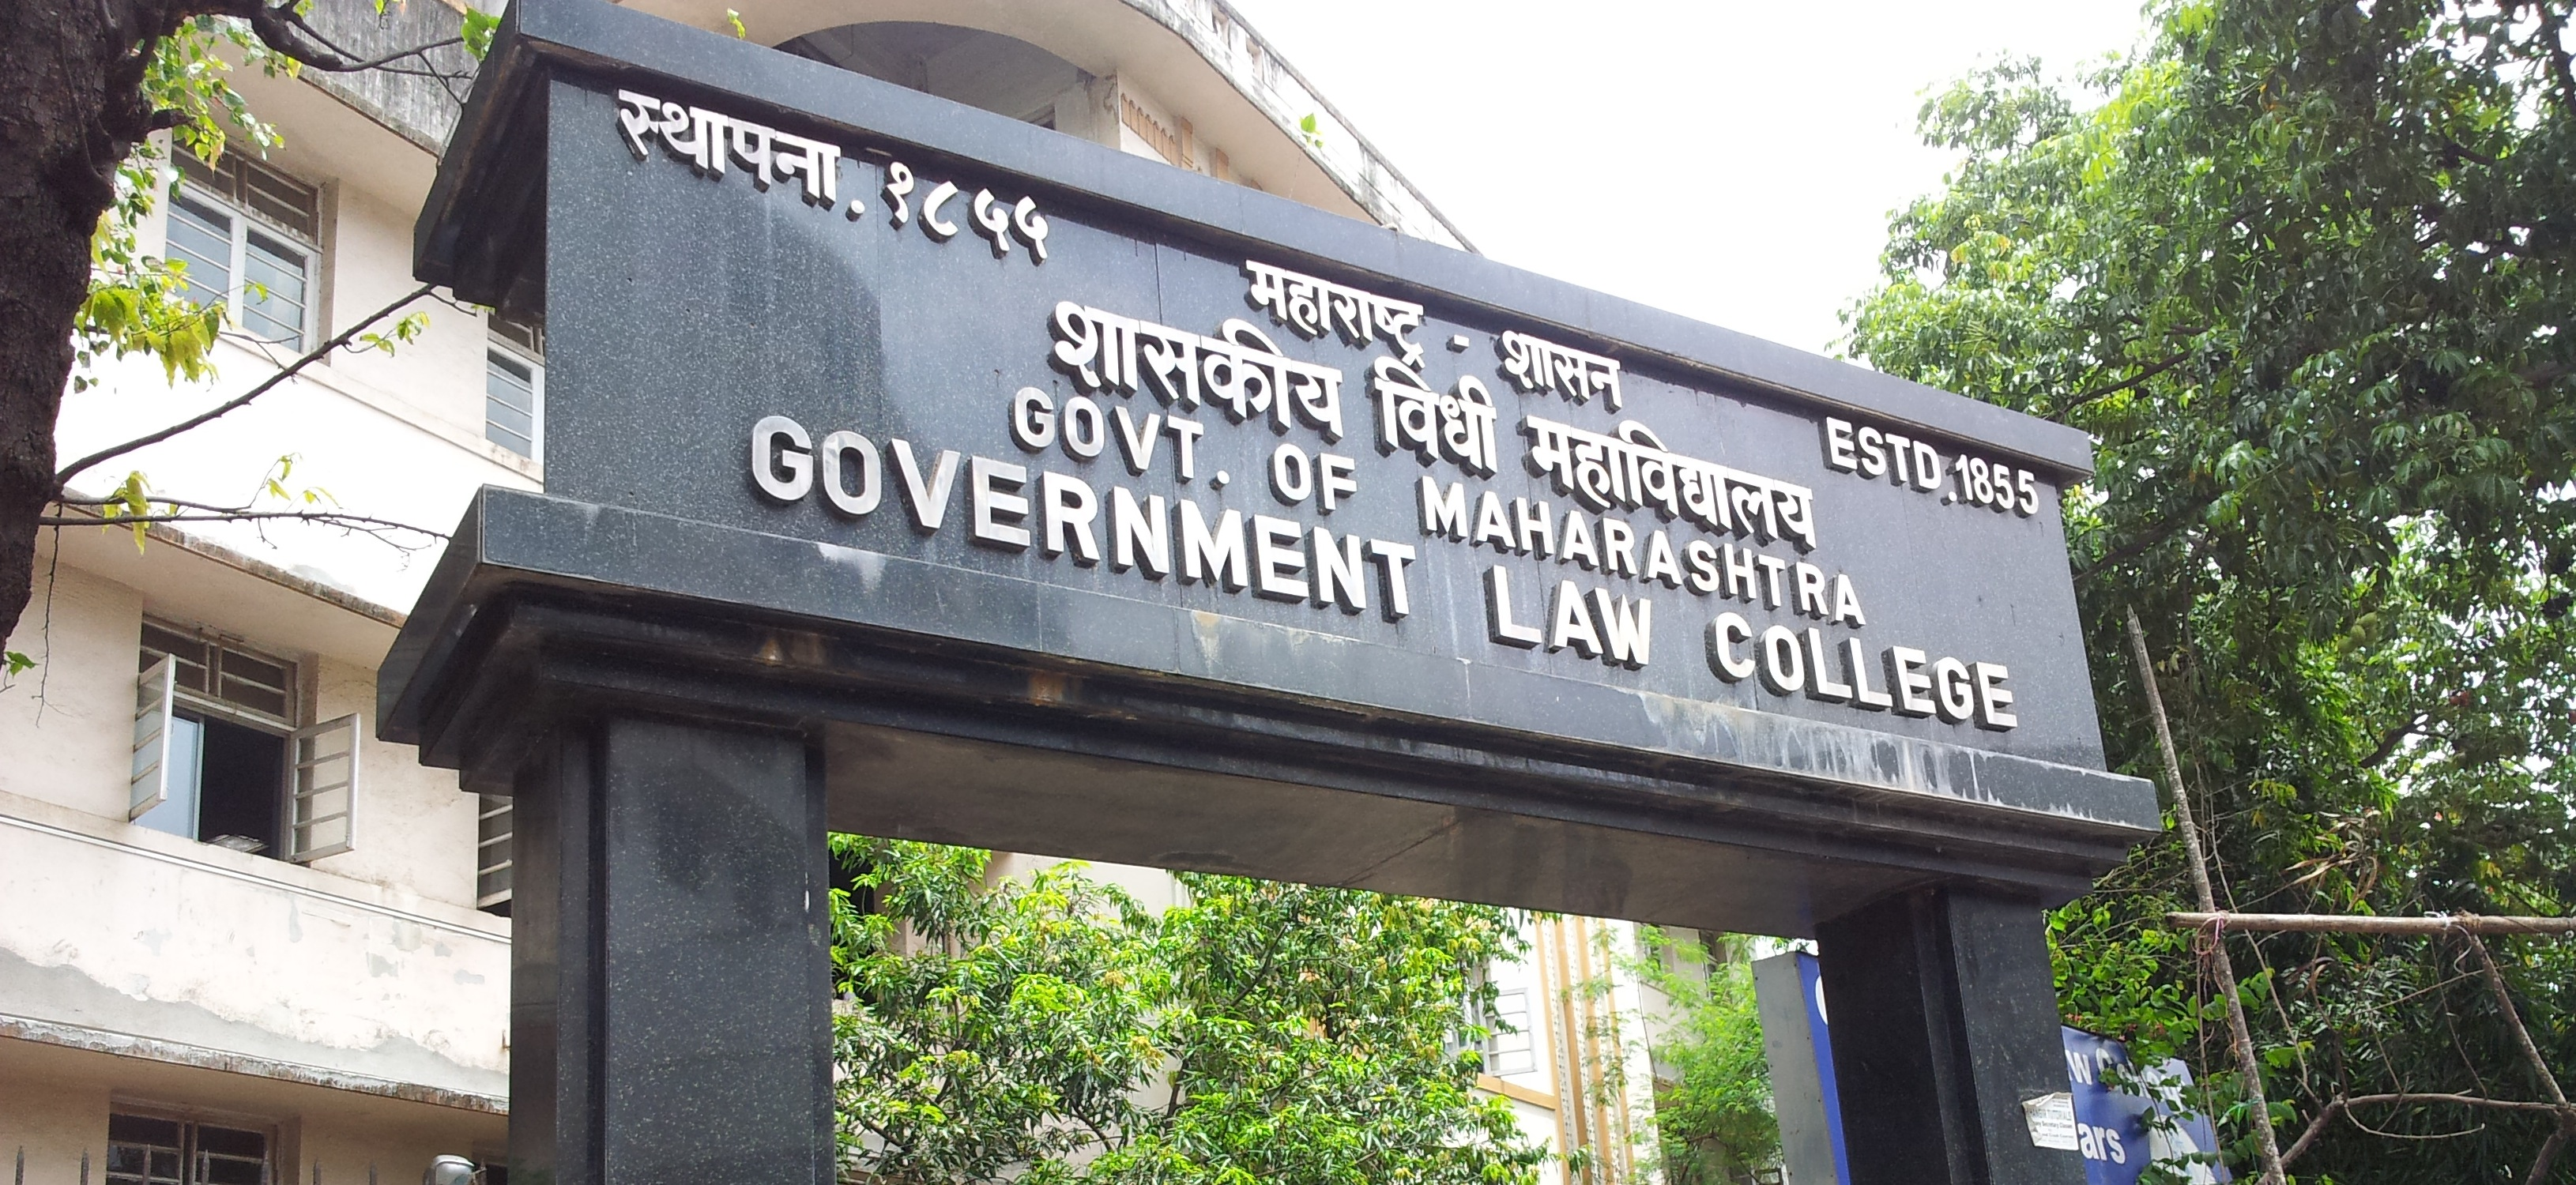 goverment law college in mumbai